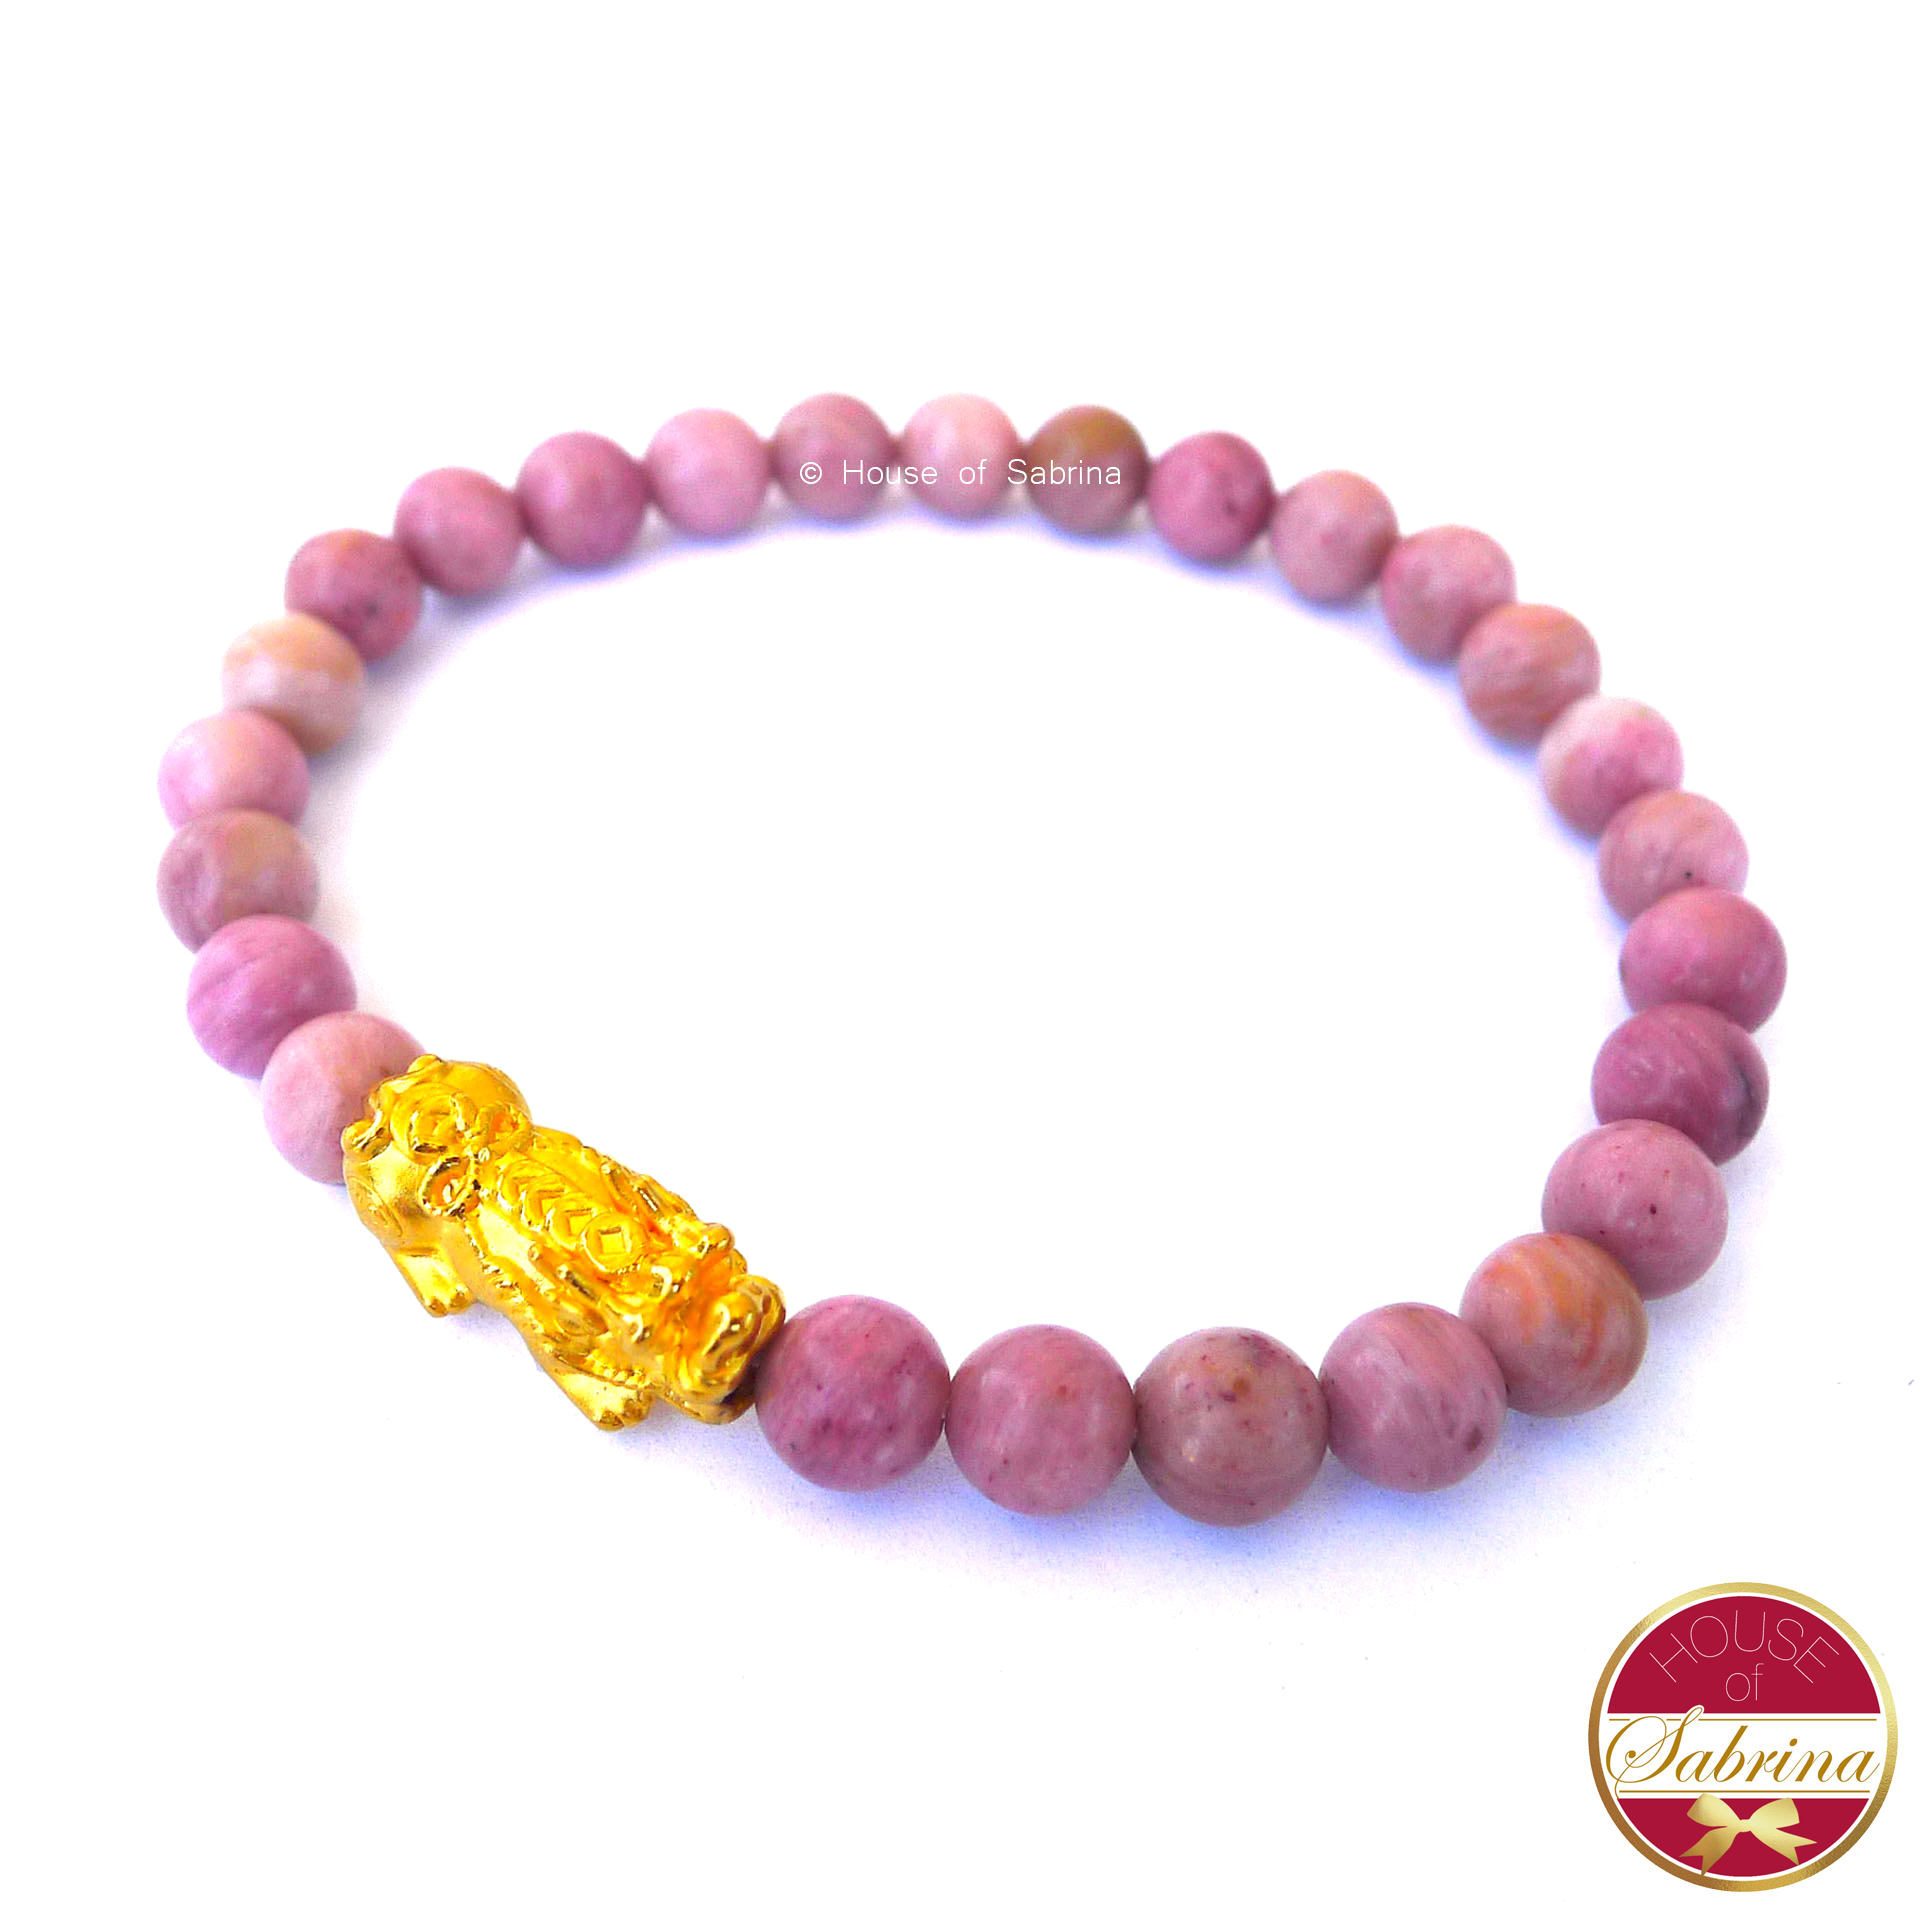 24K Gold Medium Pi Yao Charm in Rhodonite Bracelet